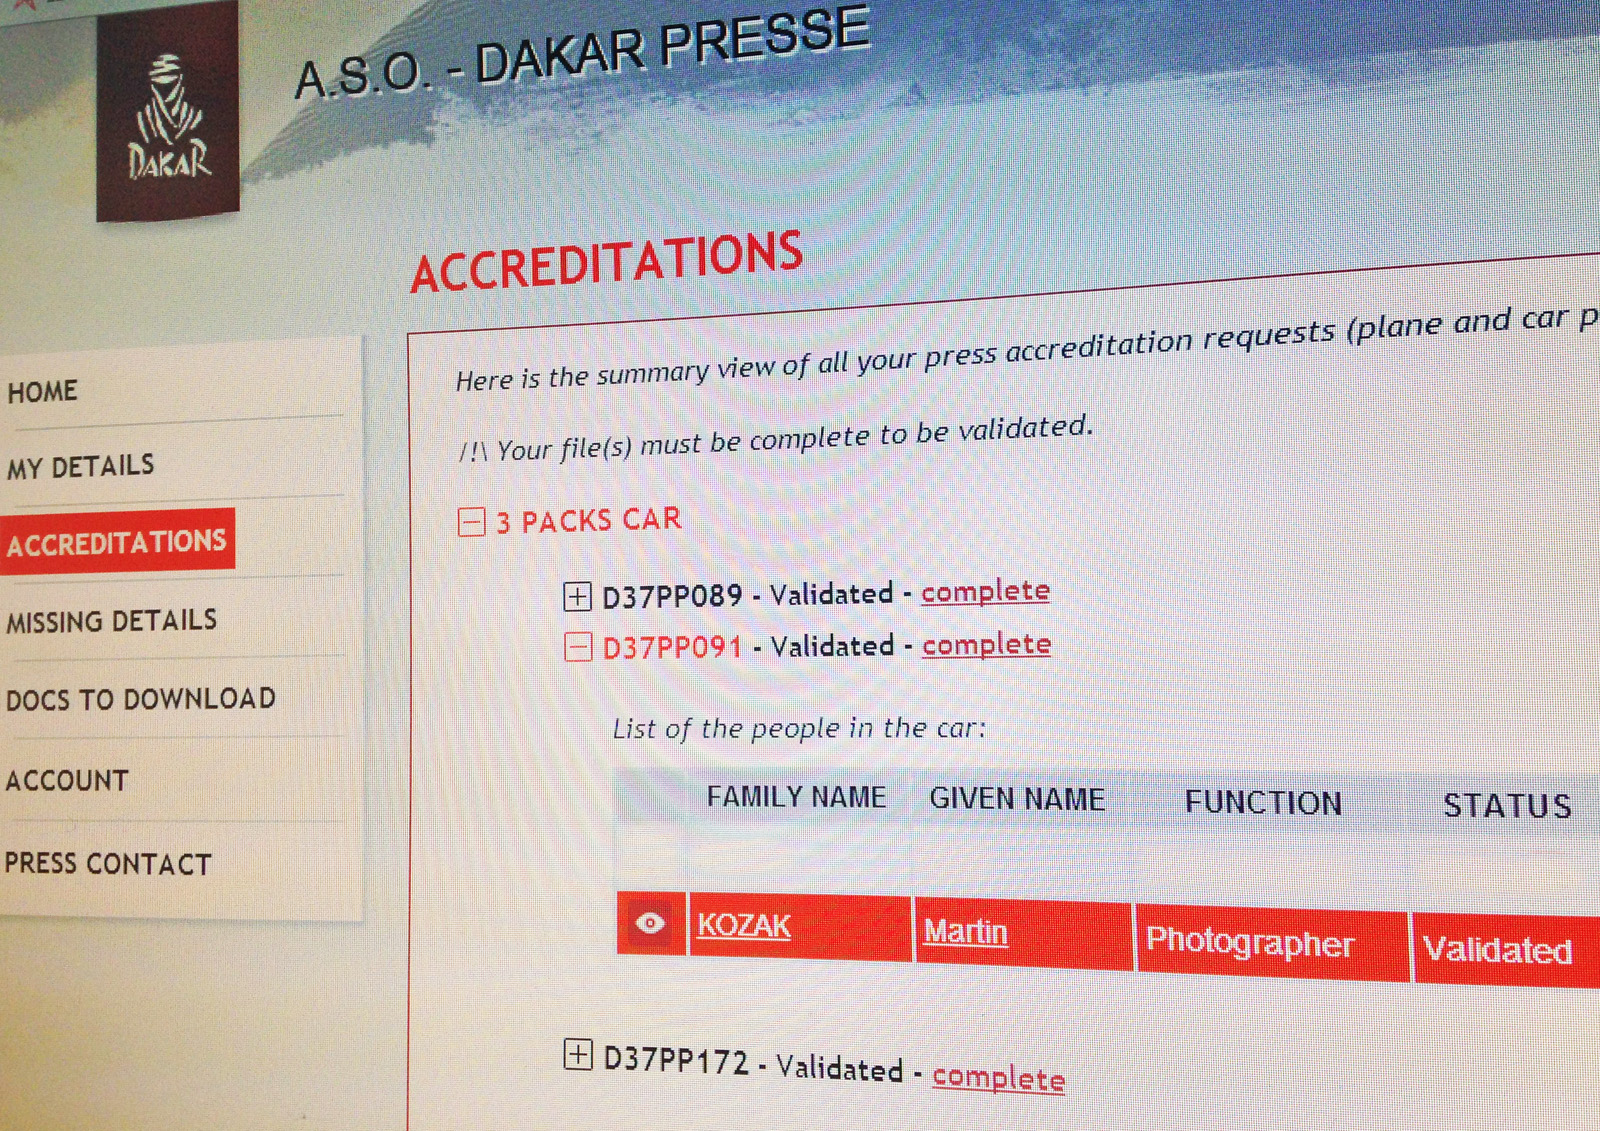 KOZAK - Dakar accreditation